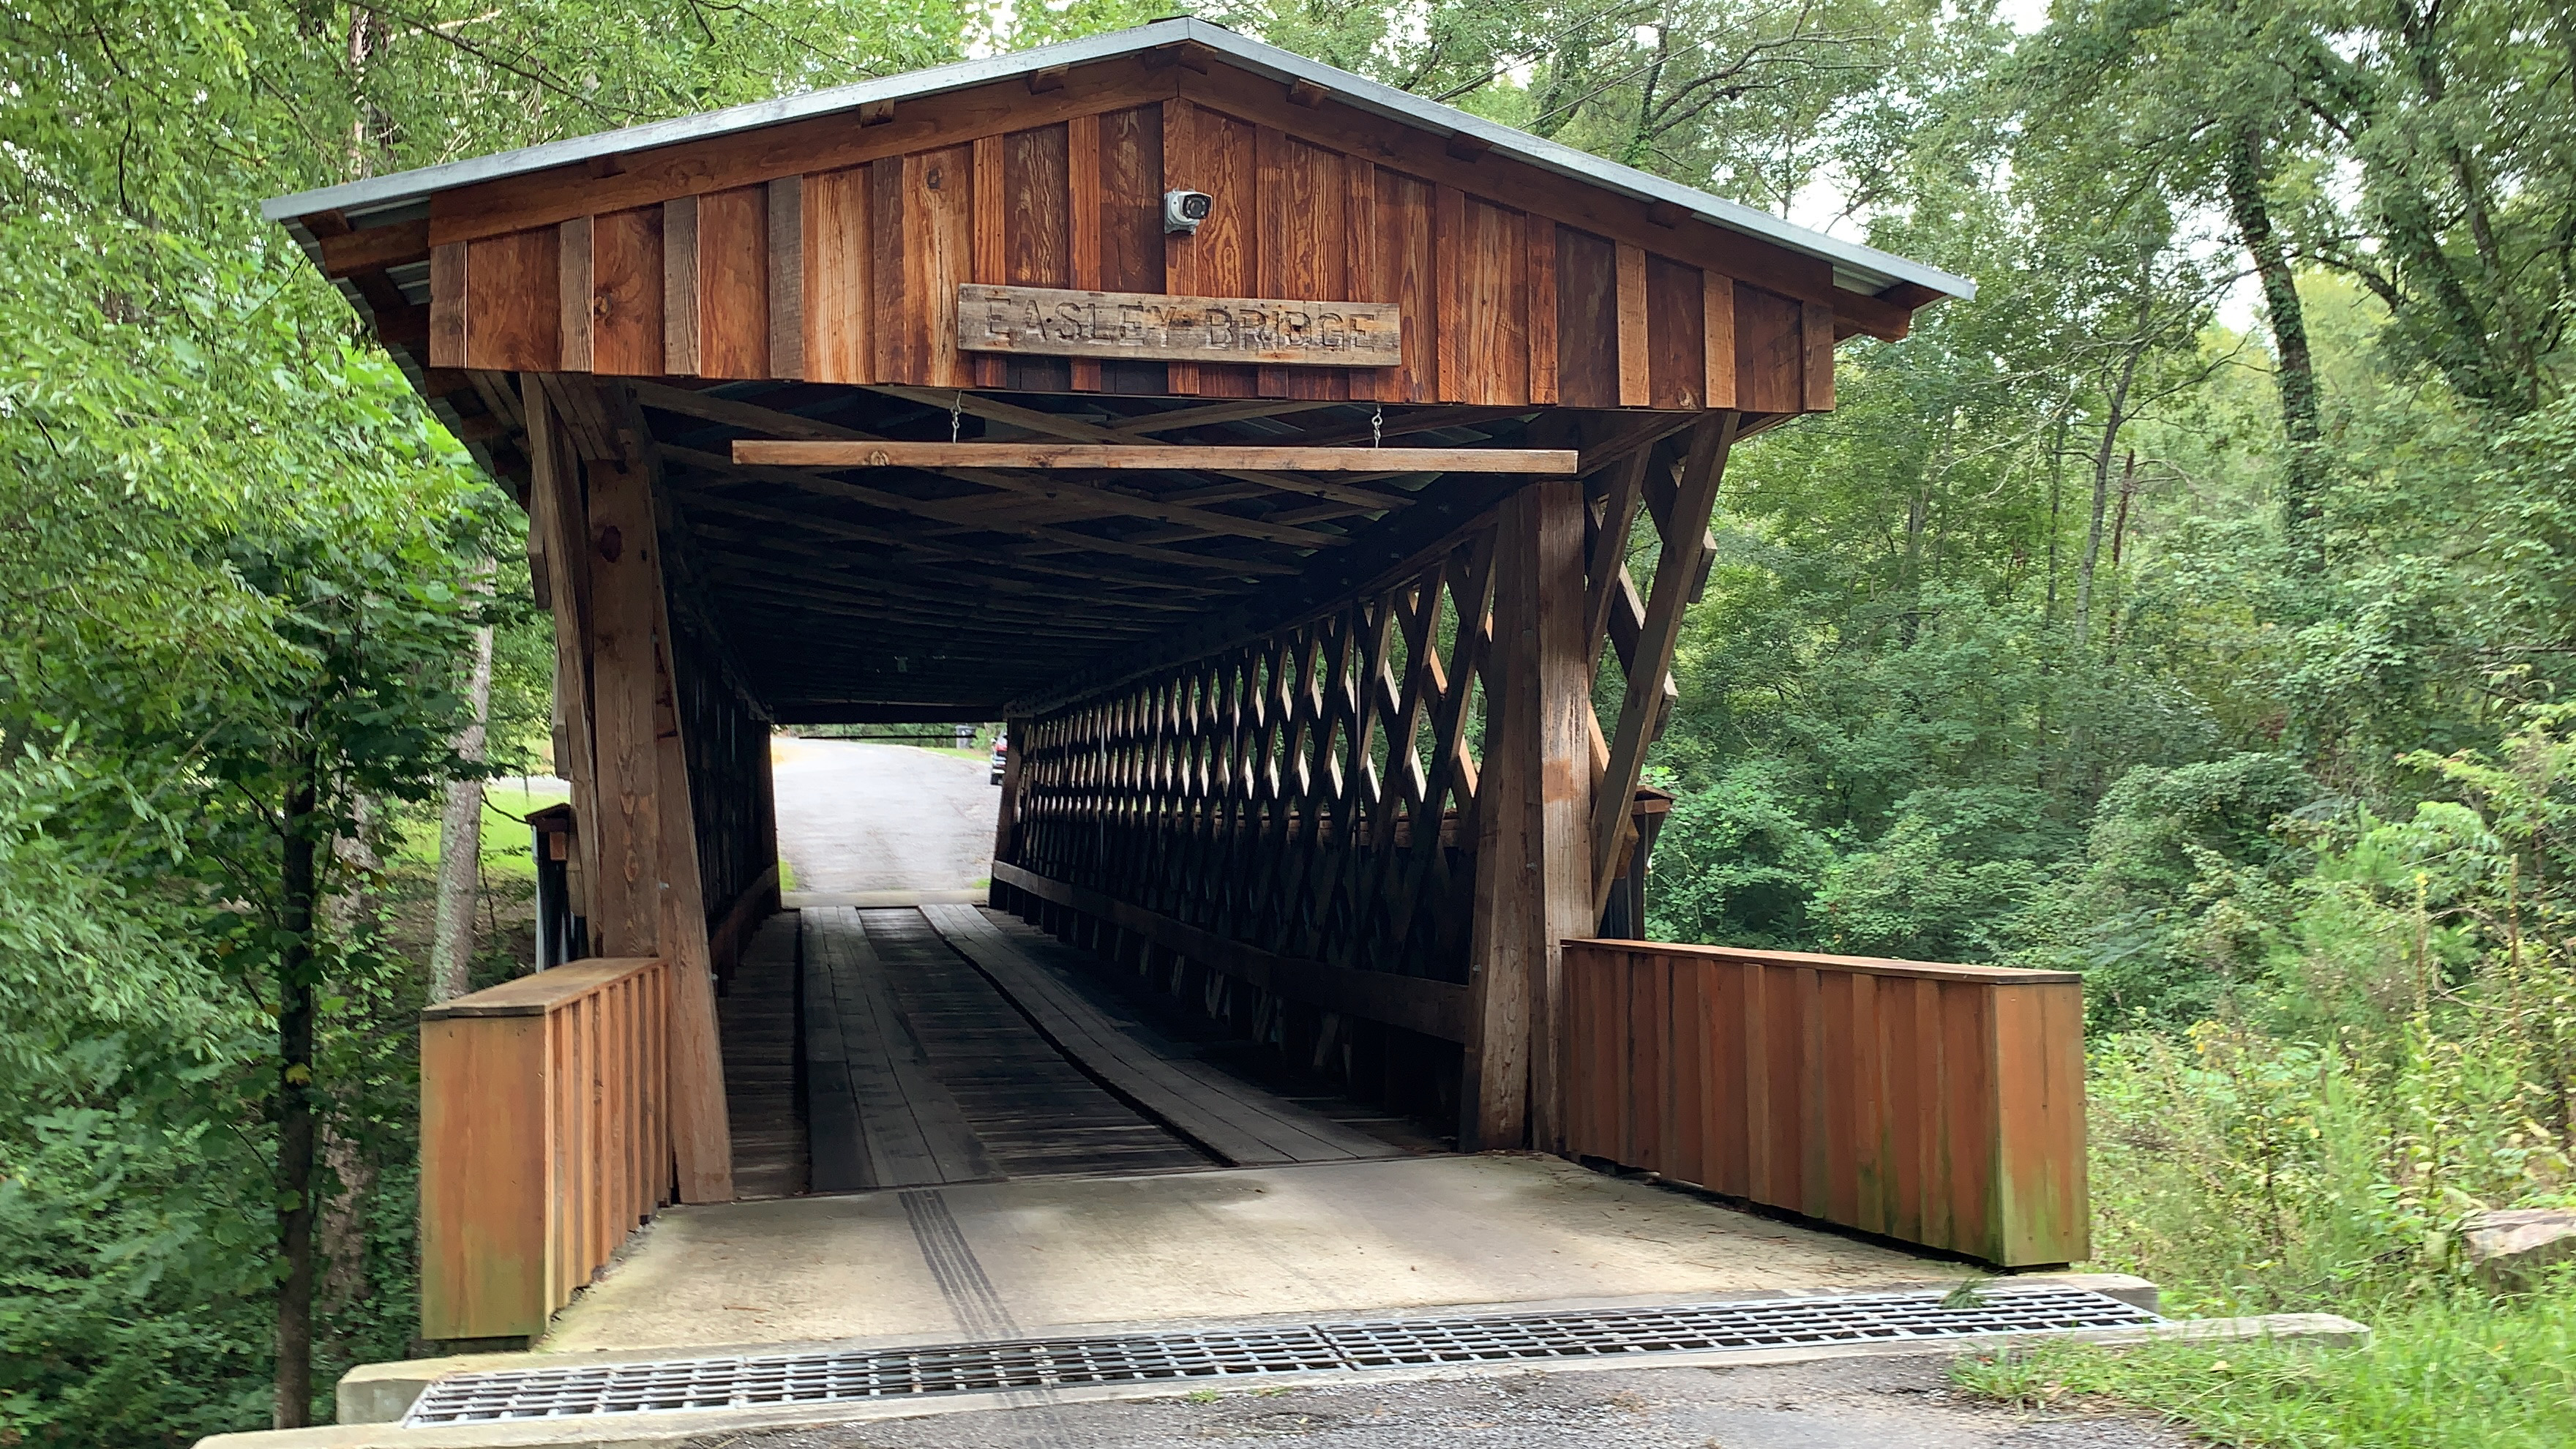 Historic Easley Bridge Blount County